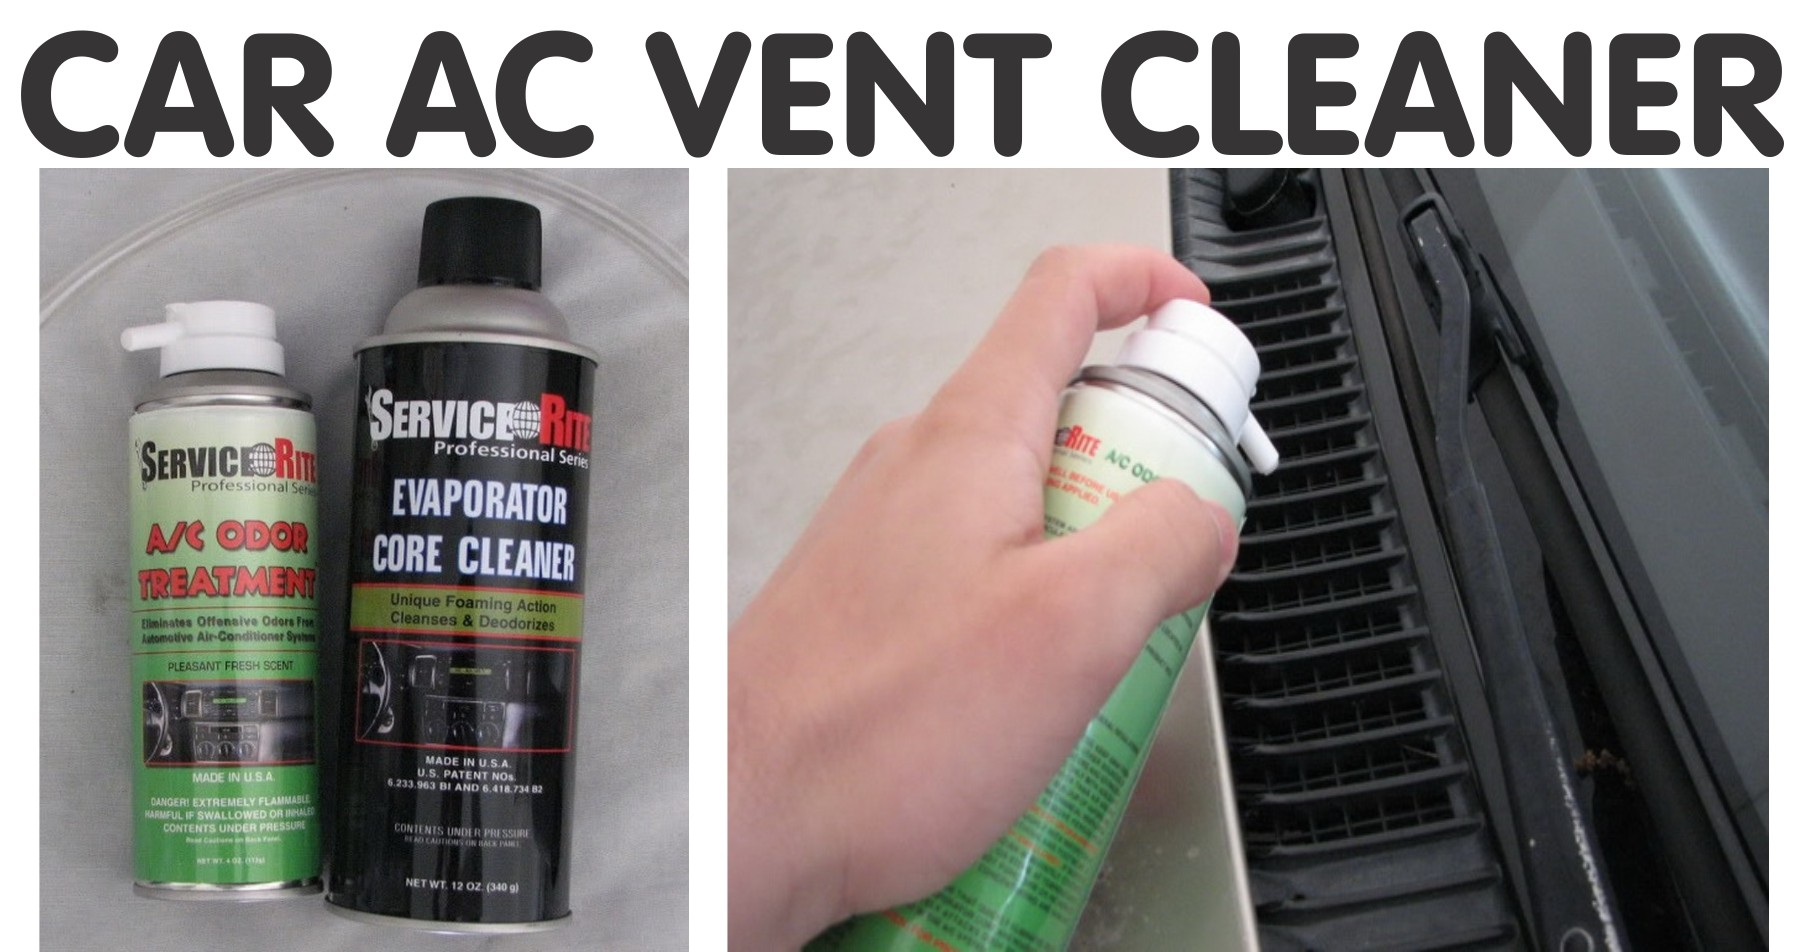 ac vent cleaner odor spray for car